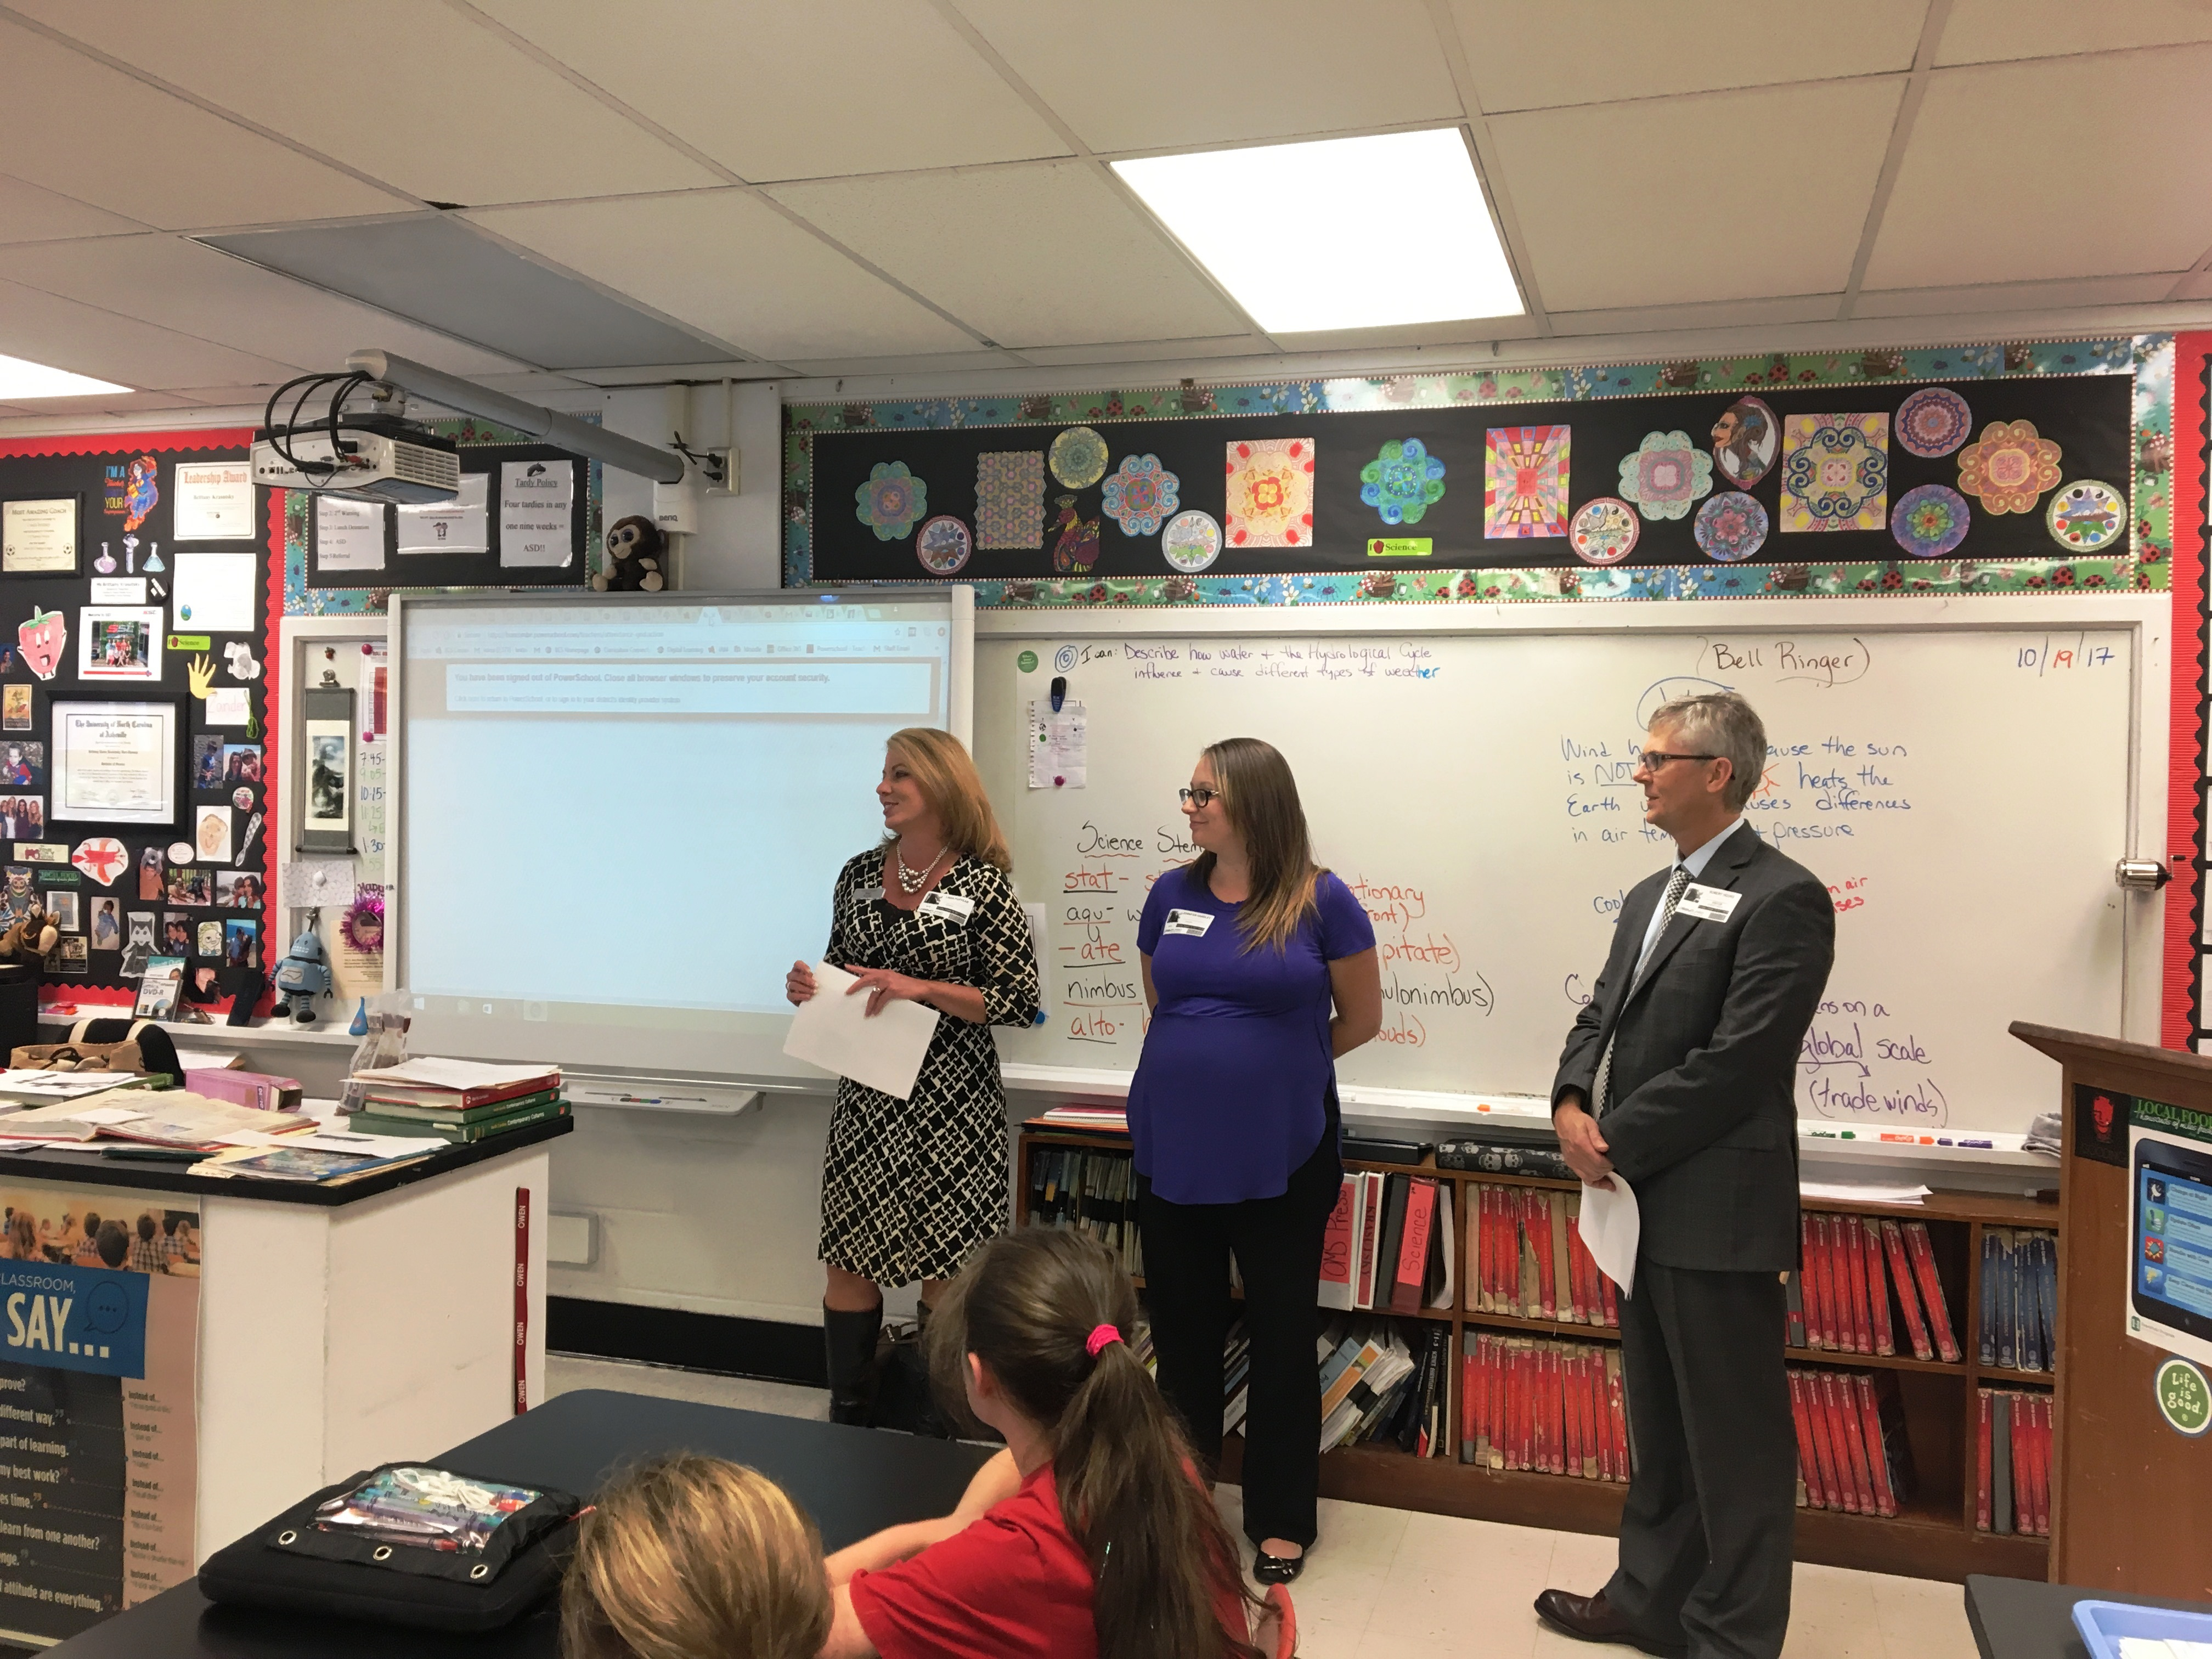 BB&T dispatched these professionals to teach Owen Middle School students financial literacy